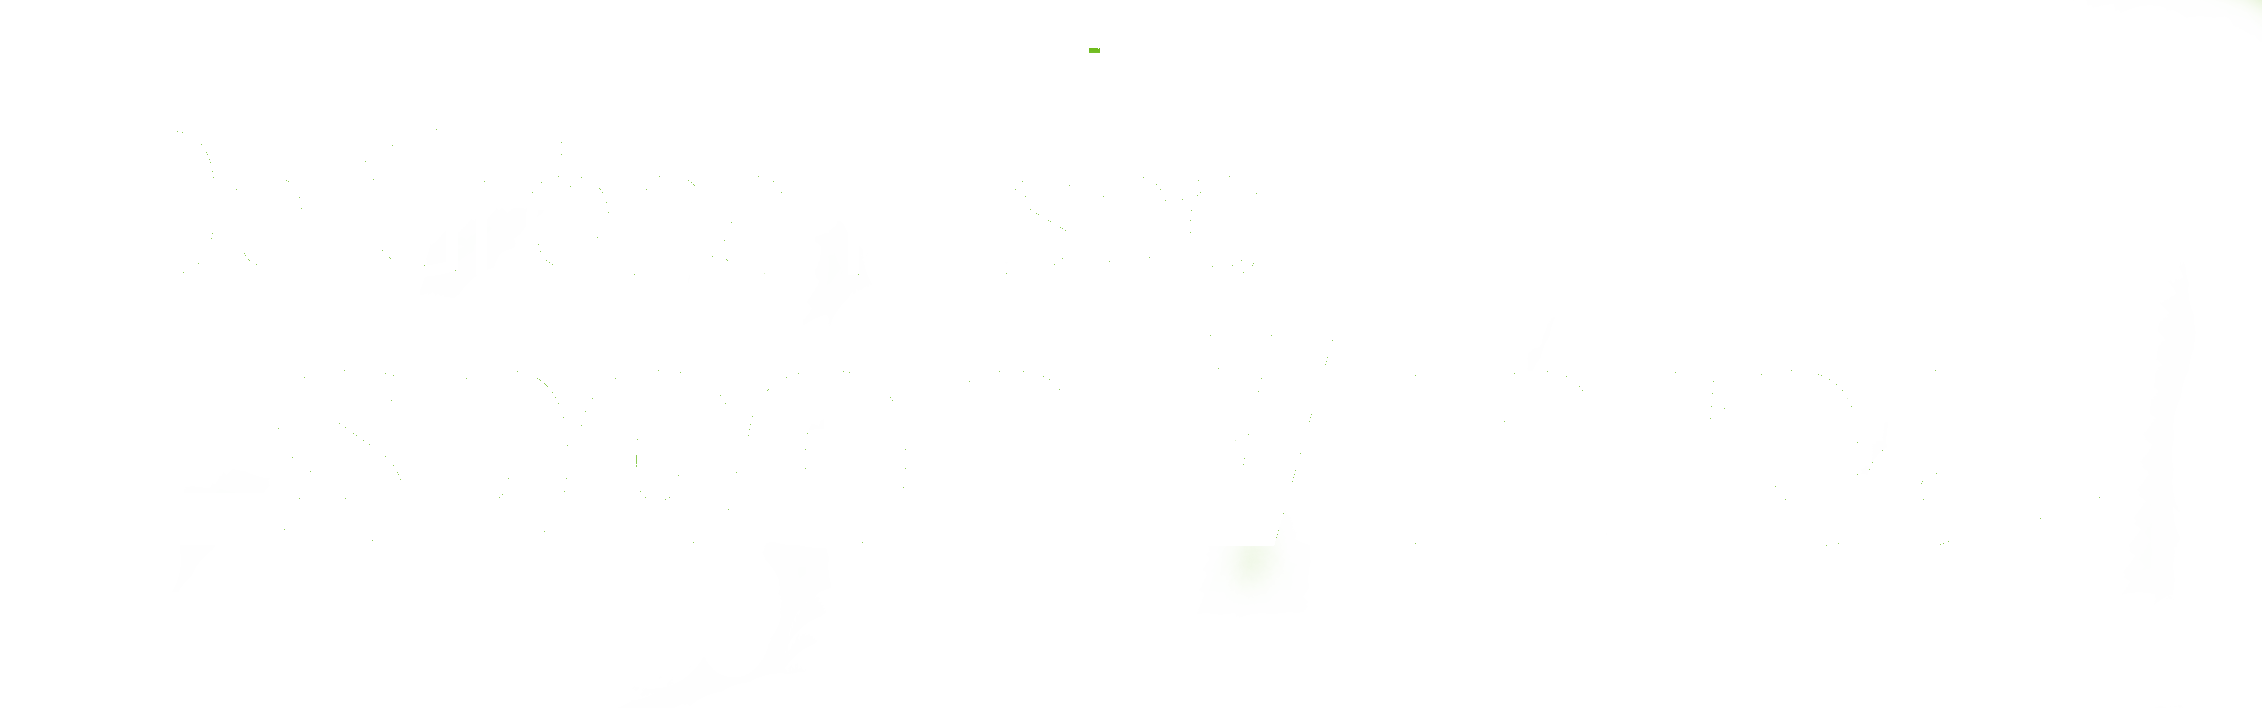 Espoon Vihreät – Vinkkaa ehdokasta!